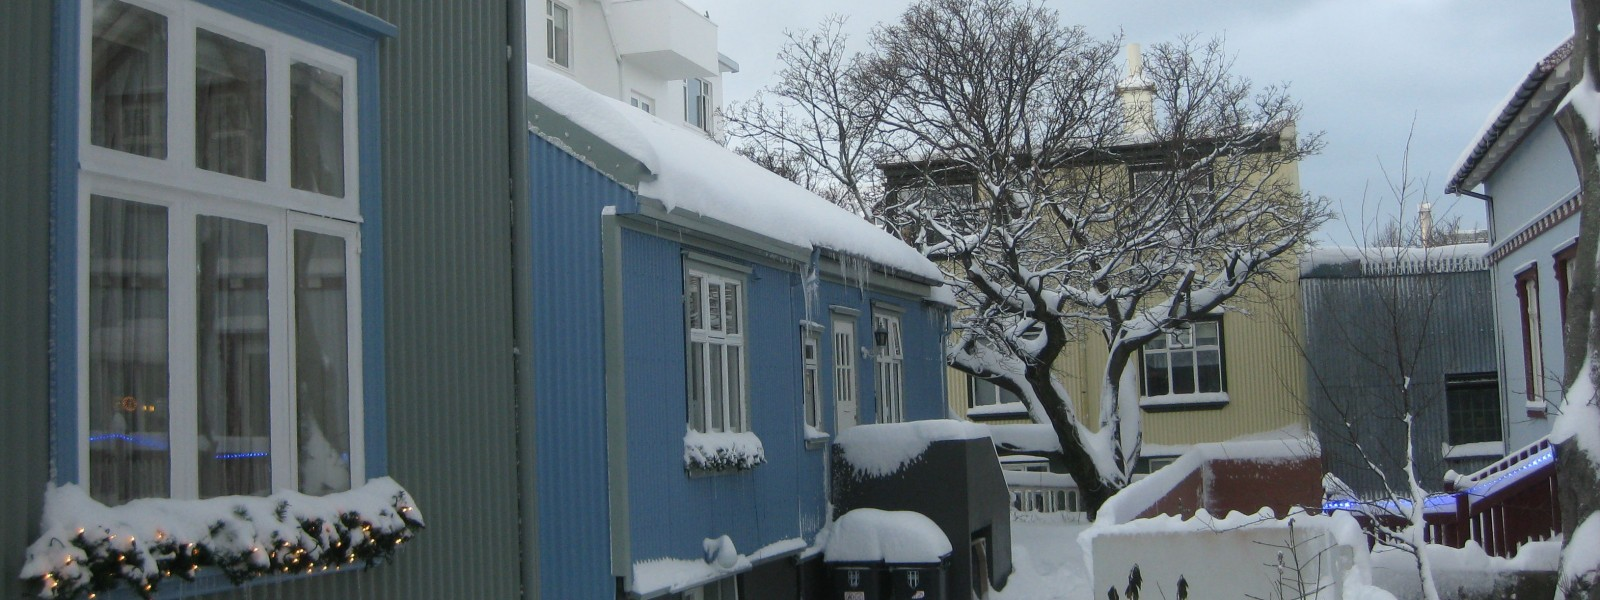 Winter is here in Reykjavik